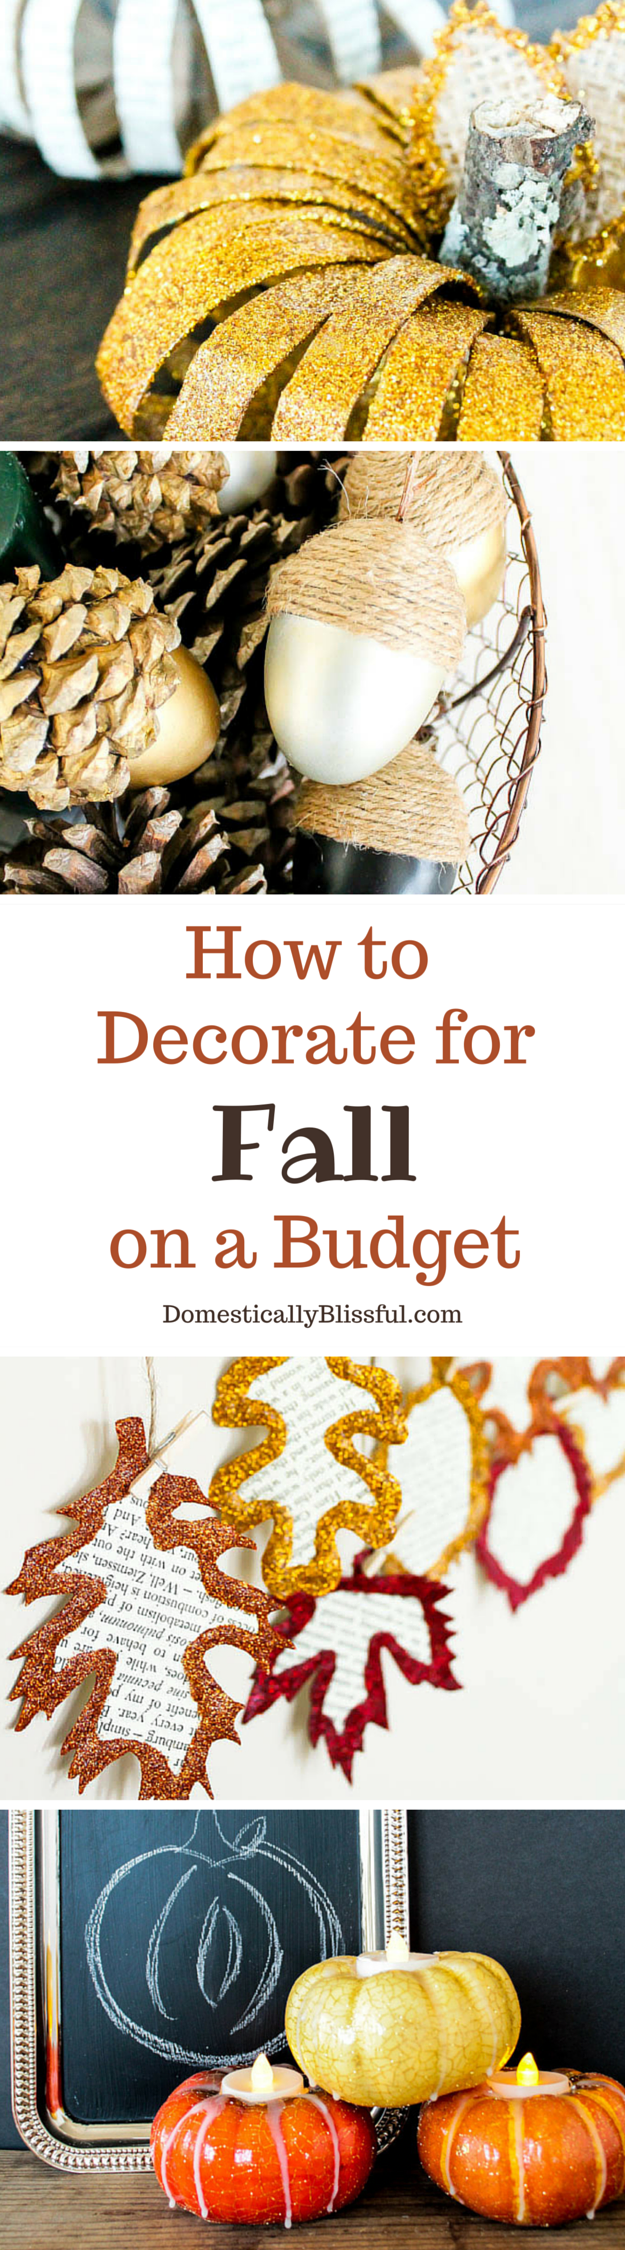 How to decorate for fall on a budget - 5 Tips from Domestically Blissful